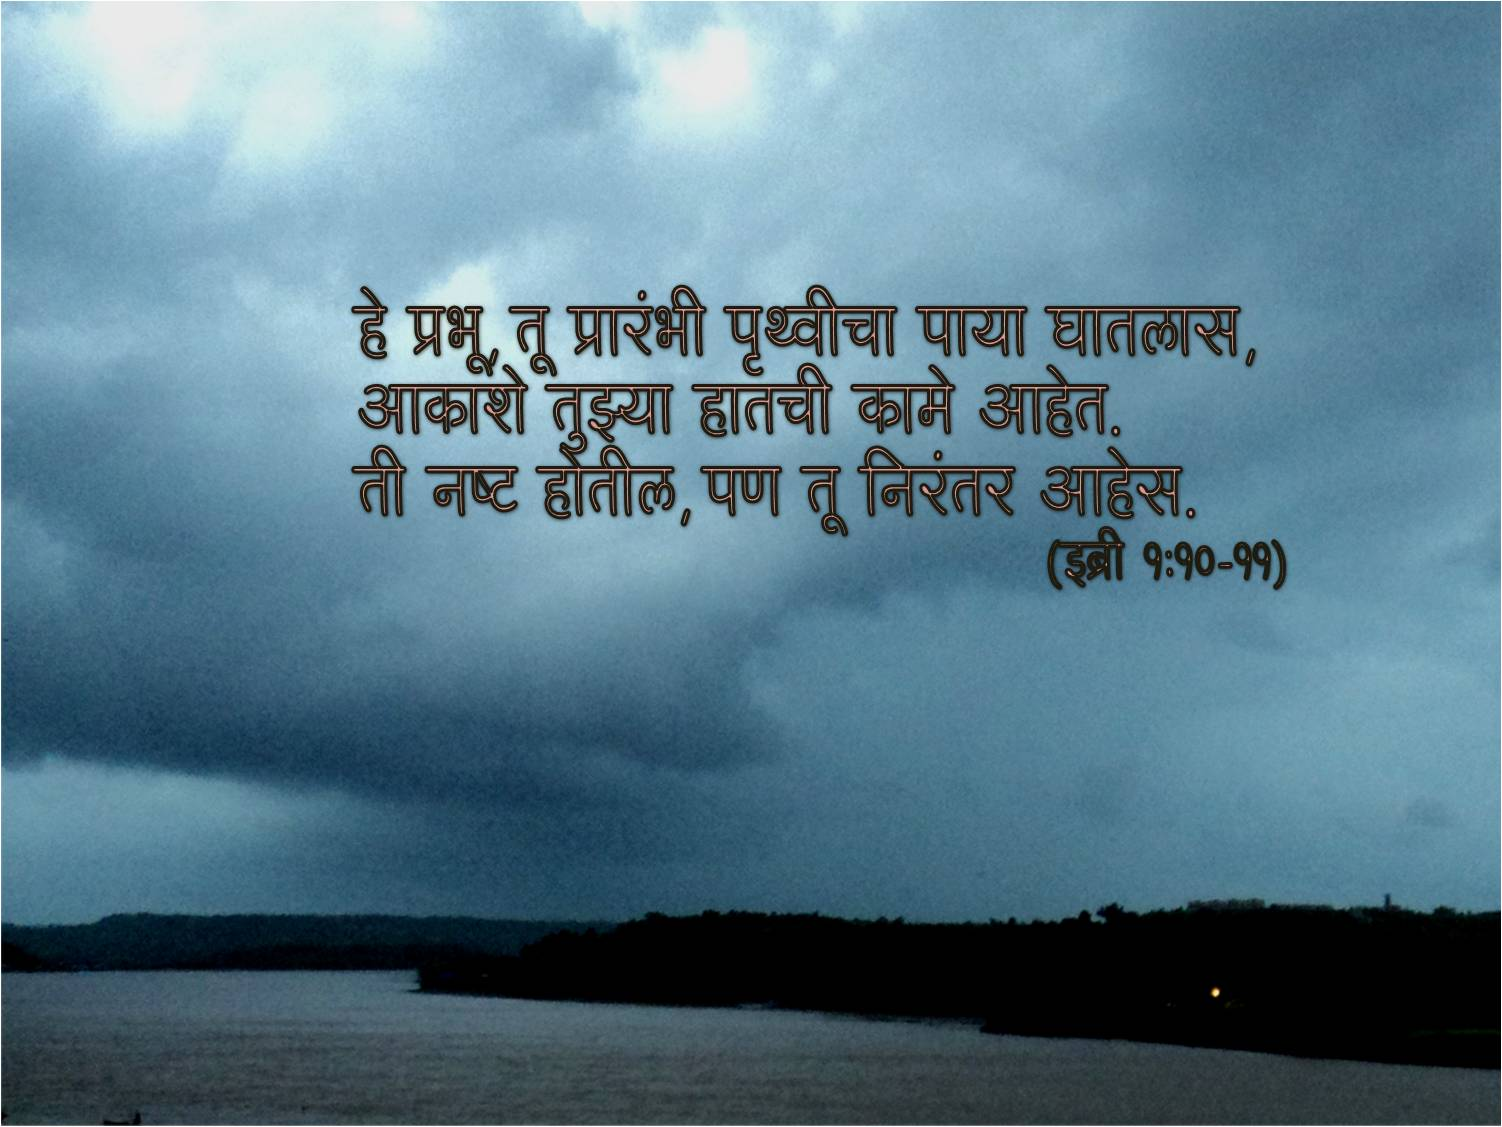 Download Marathi Wallpaper With Quotes Gallery  Download Marath...